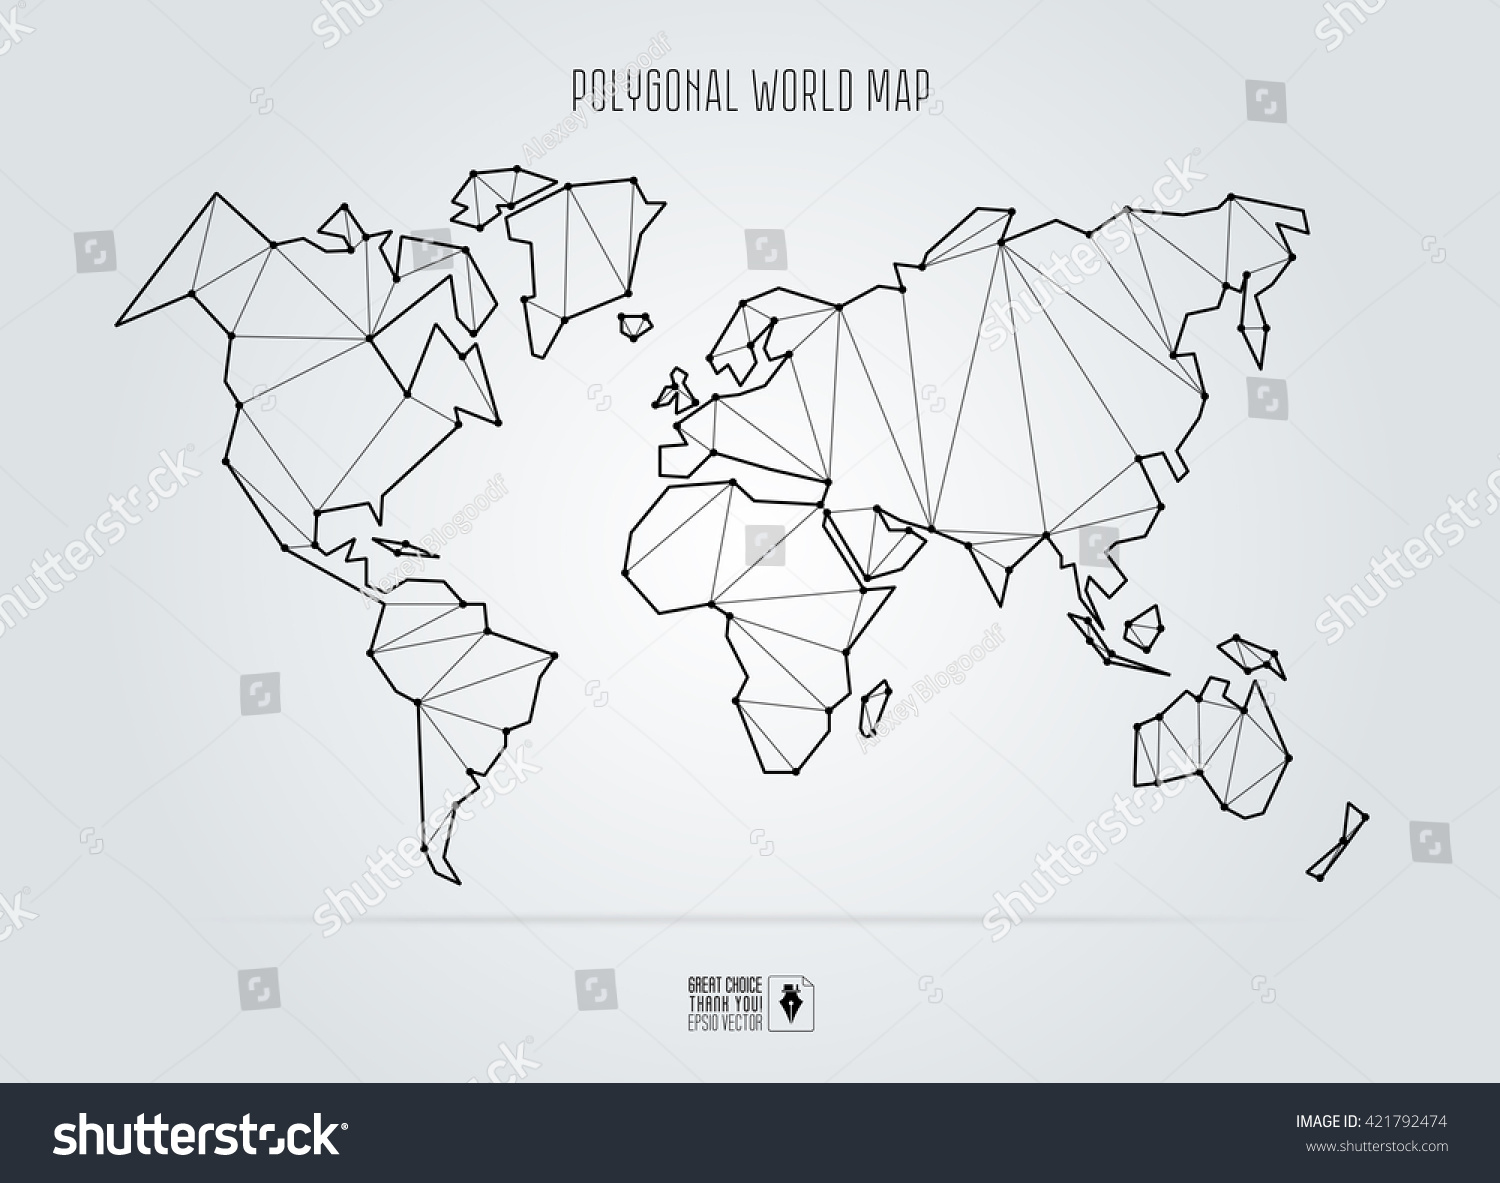 Polygonal abstract world map vector illustration vectores en stock polygonal abstract world map vector illustration gumiabroncs Image collections